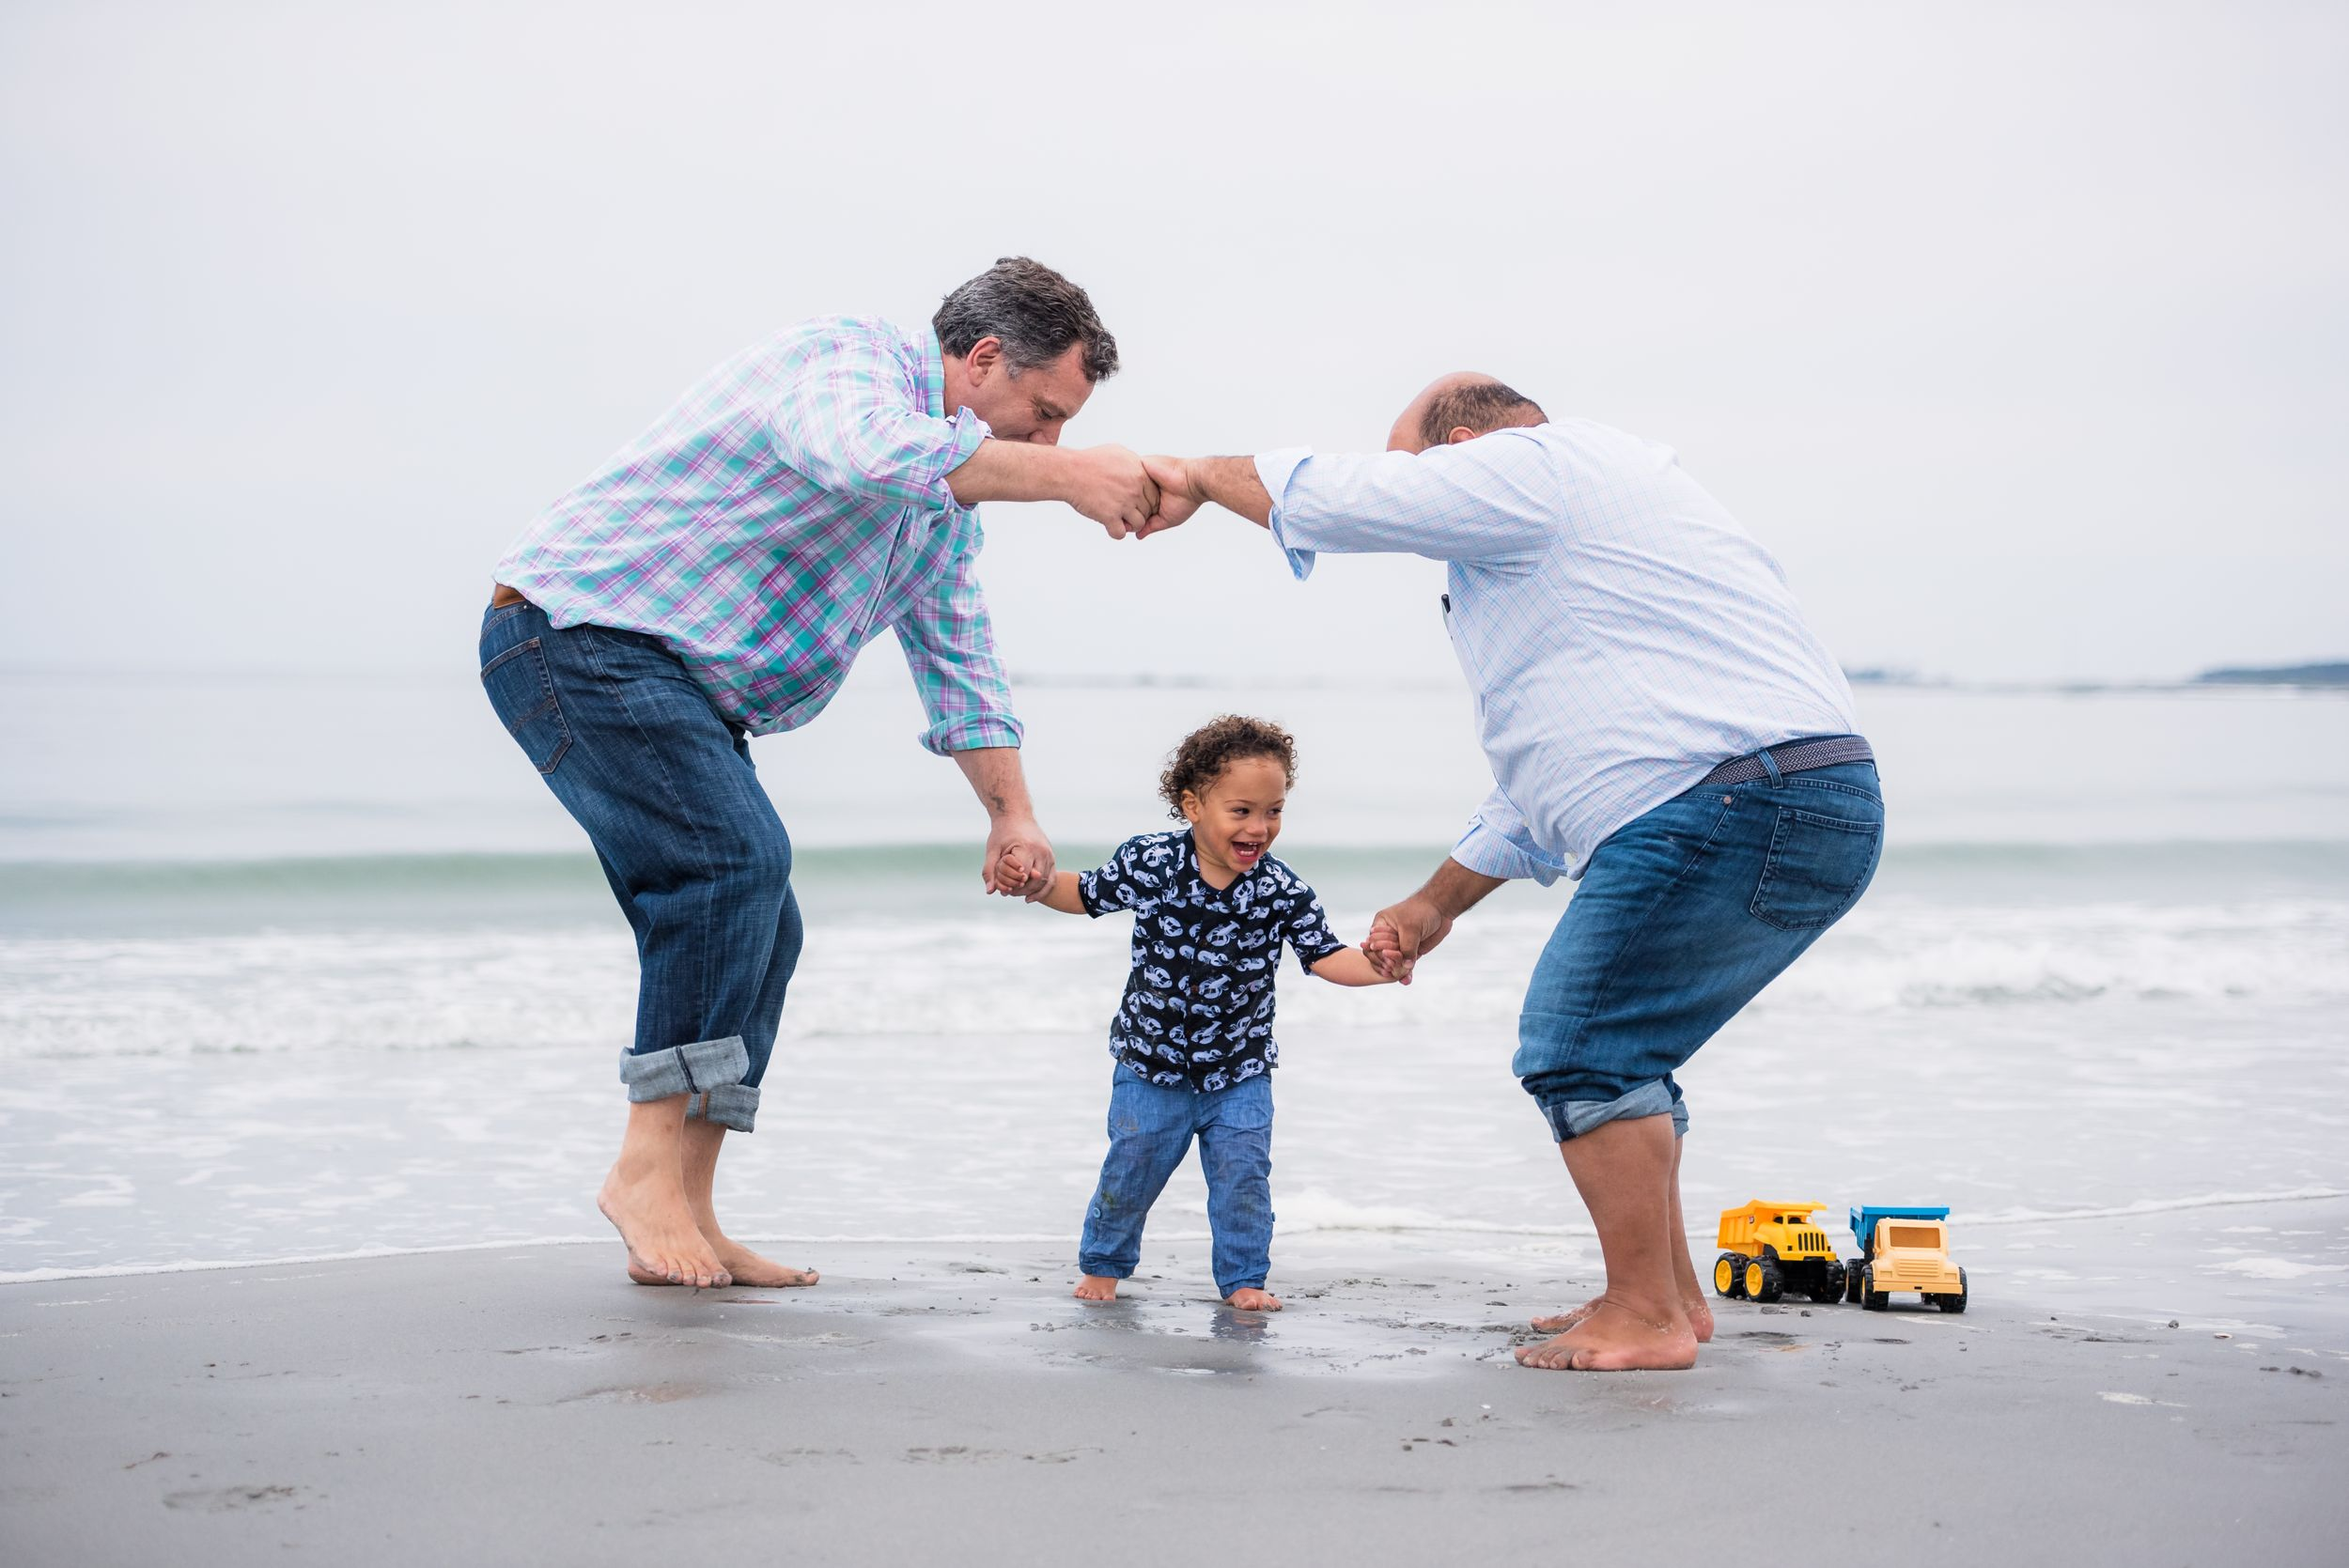 Making your family photo session great